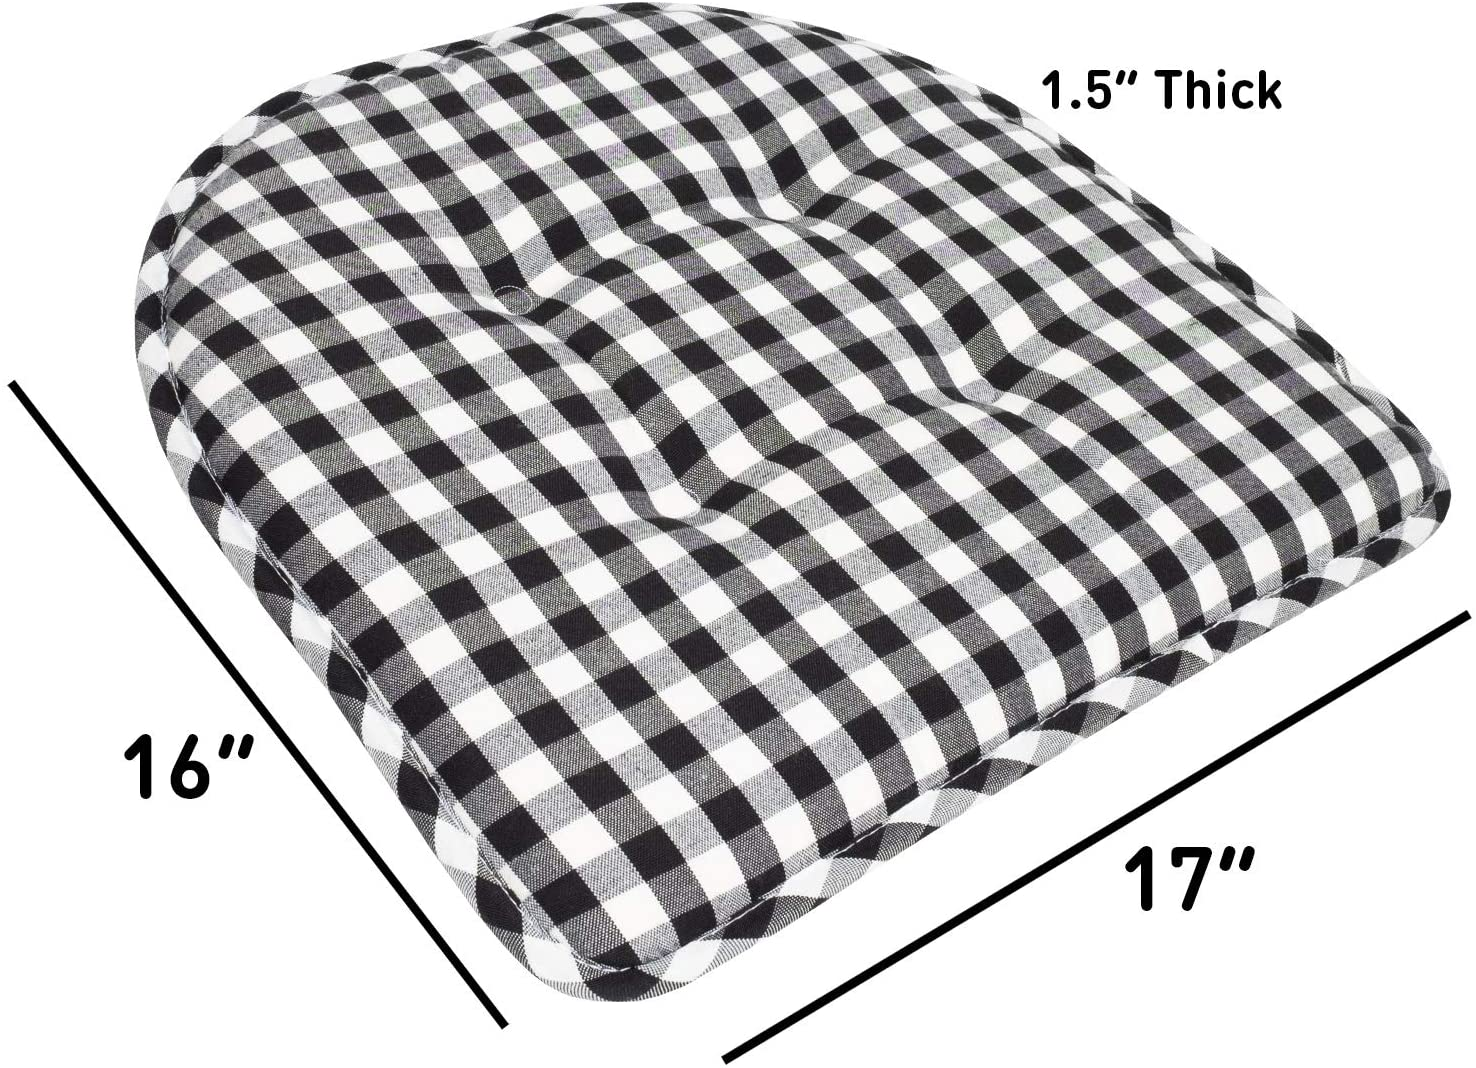 Checkered Black//White 4 Pack Sweet Home Collection Chair Cushion Memory Foam Pads Tufted Slip Non Skid Rubber Back U-Shaped 17 x 16 Seat Cover